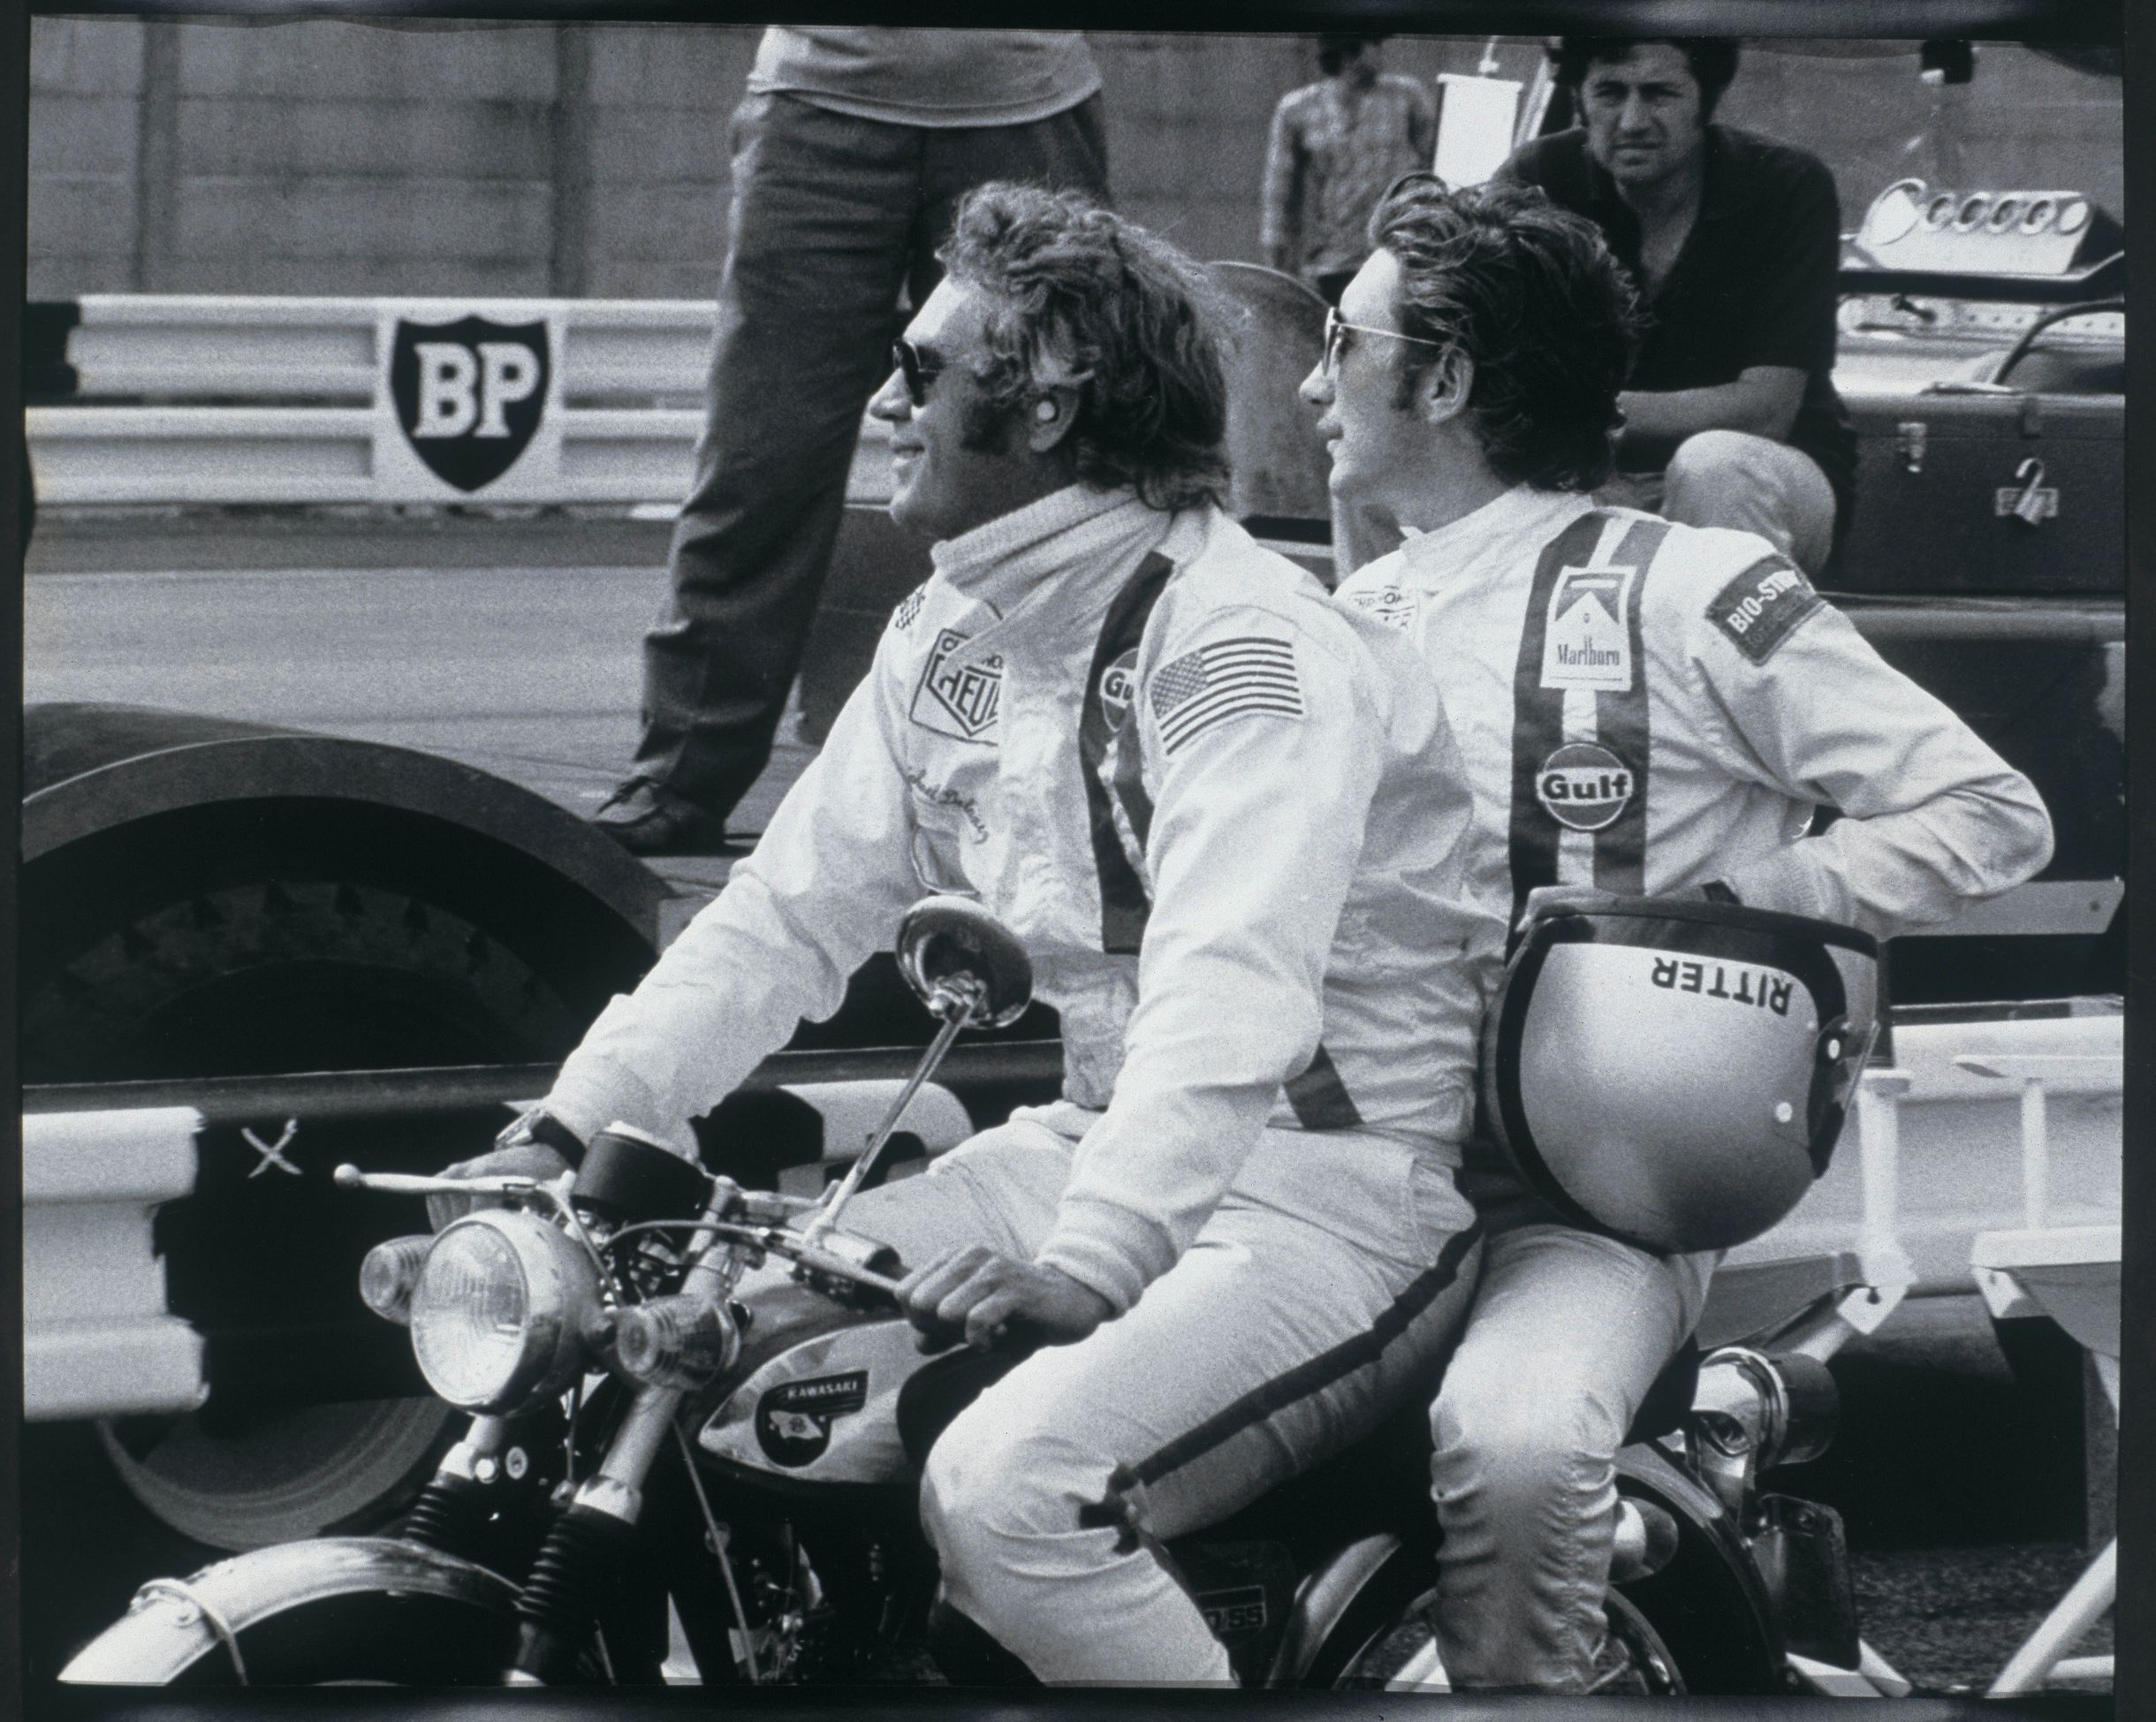 Jo Siffert was instrumental in creating the race car driver image that Steve McQueen adopted in Le Mans